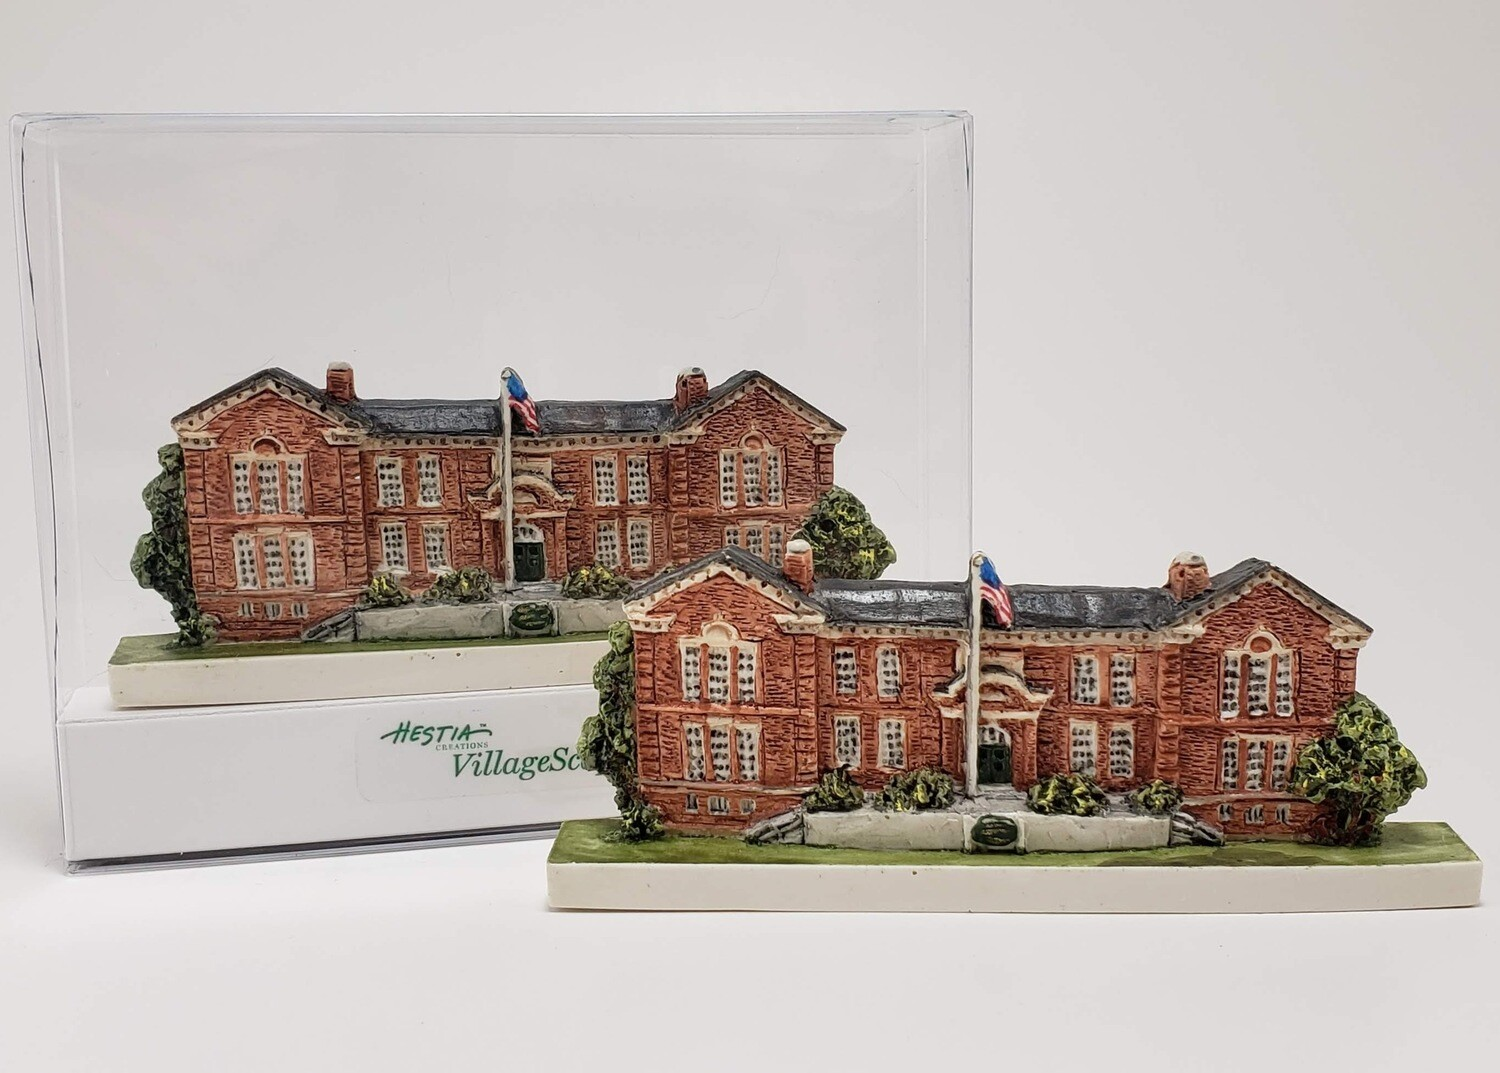 Marblehead VillageScape - Elbridge Gerry School